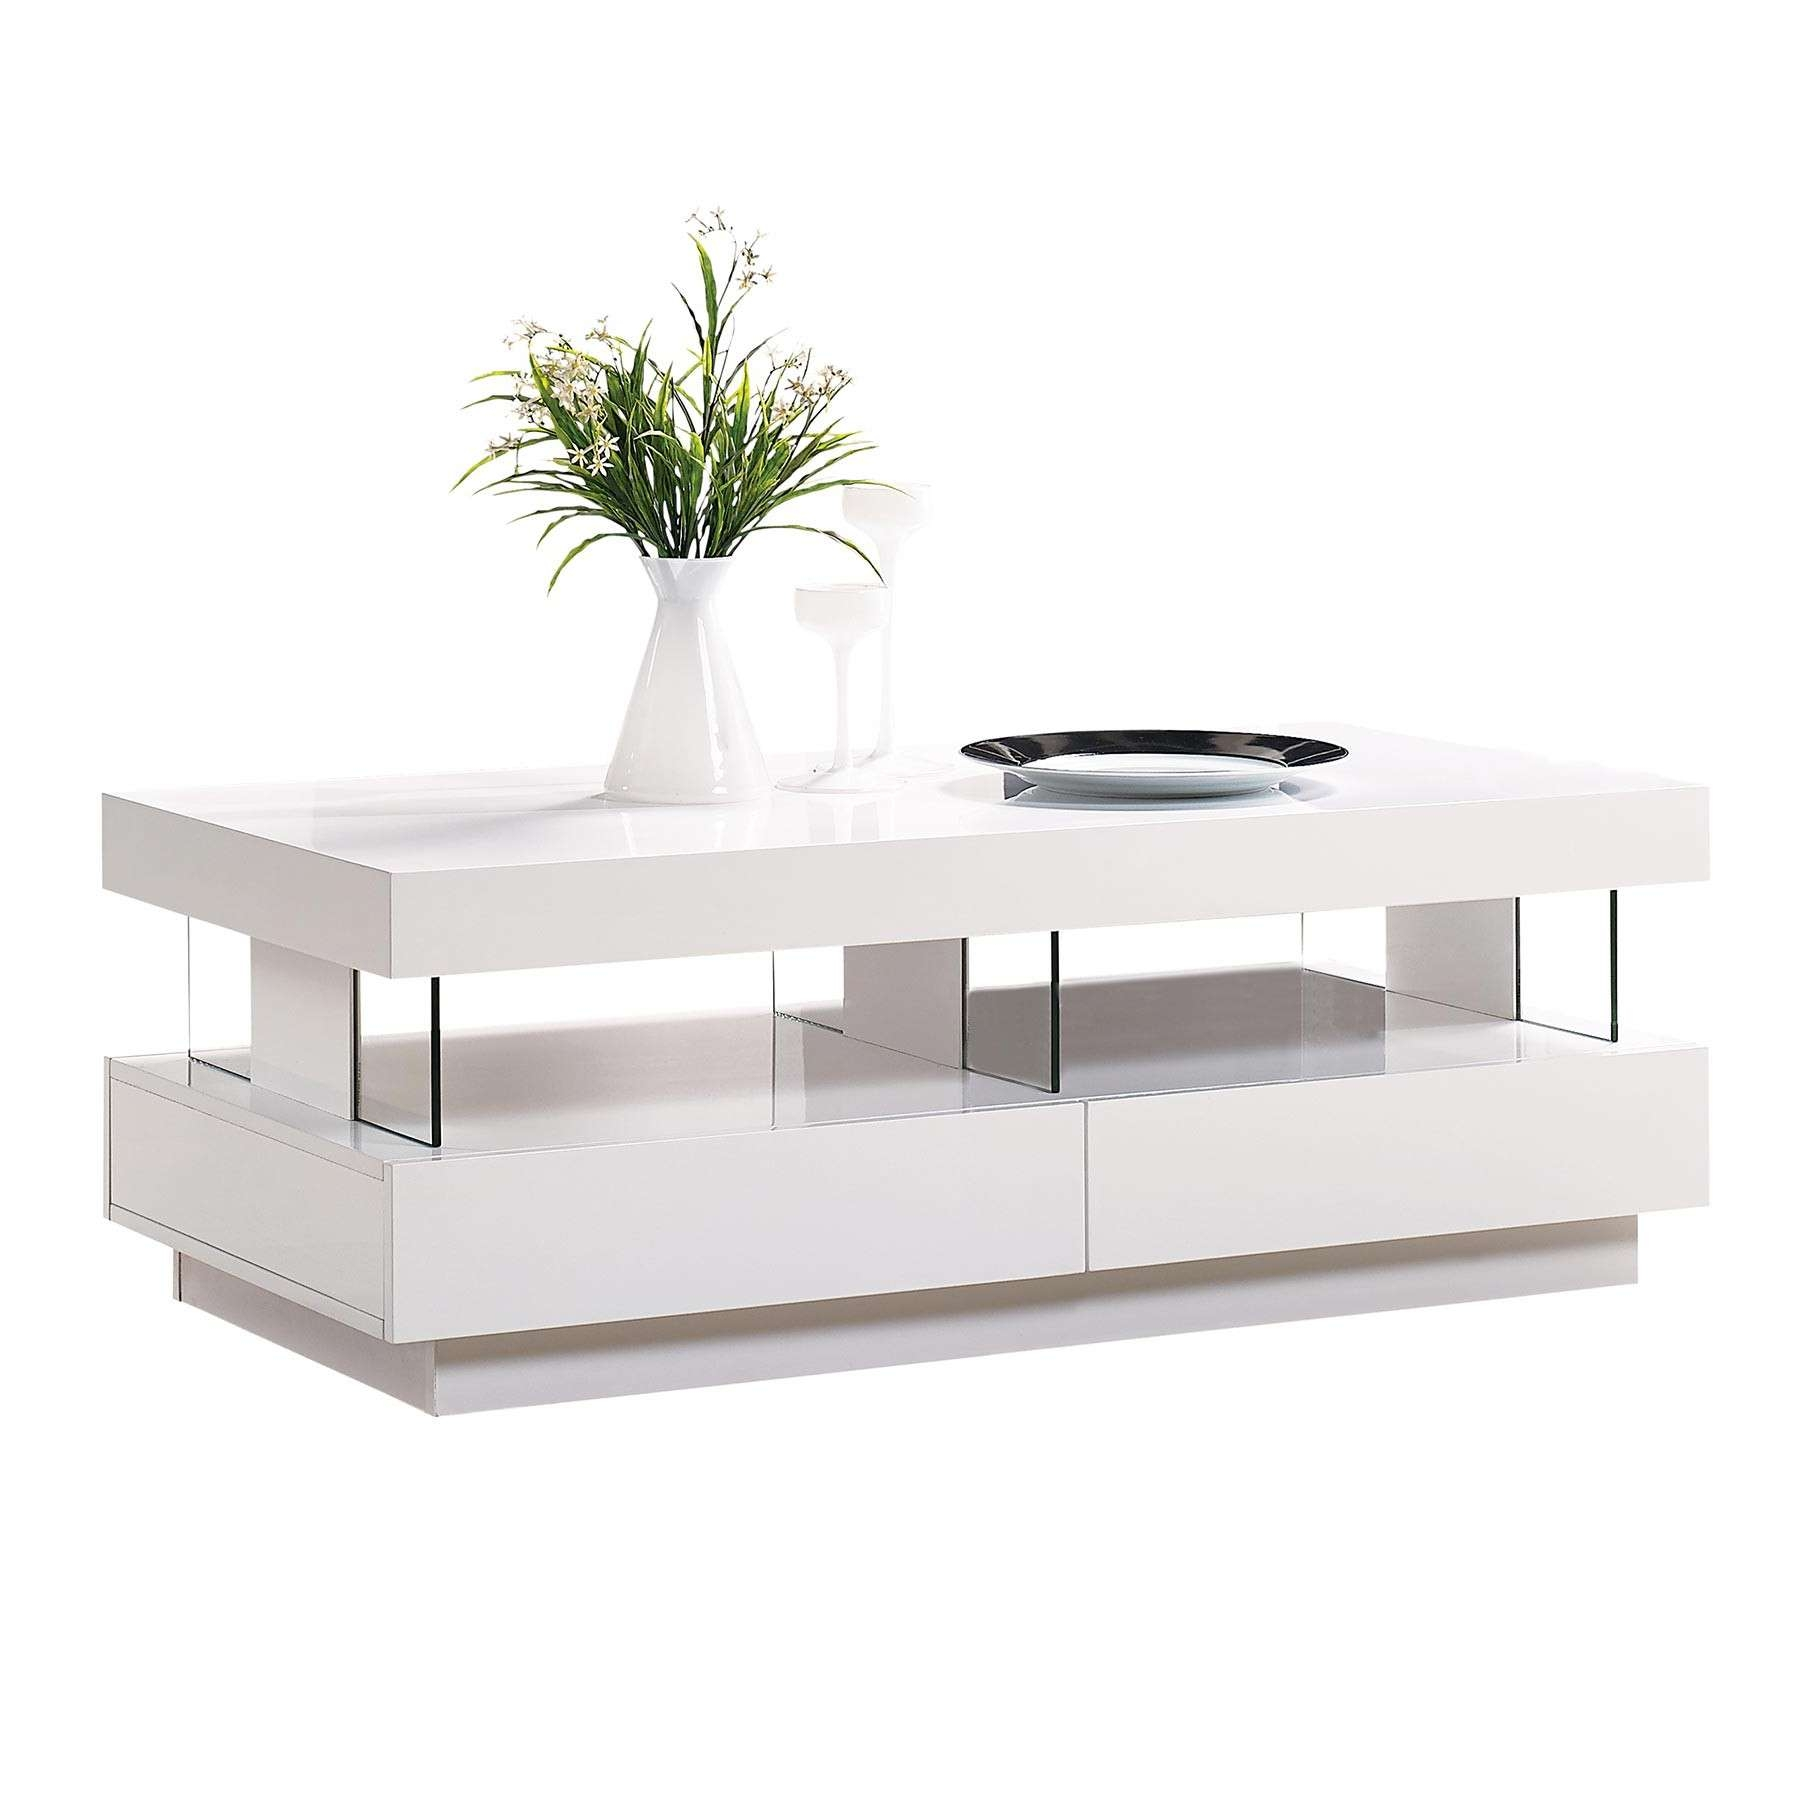 2017 Coffee Tables White High Gloss With White Gloss Coffee Table Led Light (View 1 of 20)